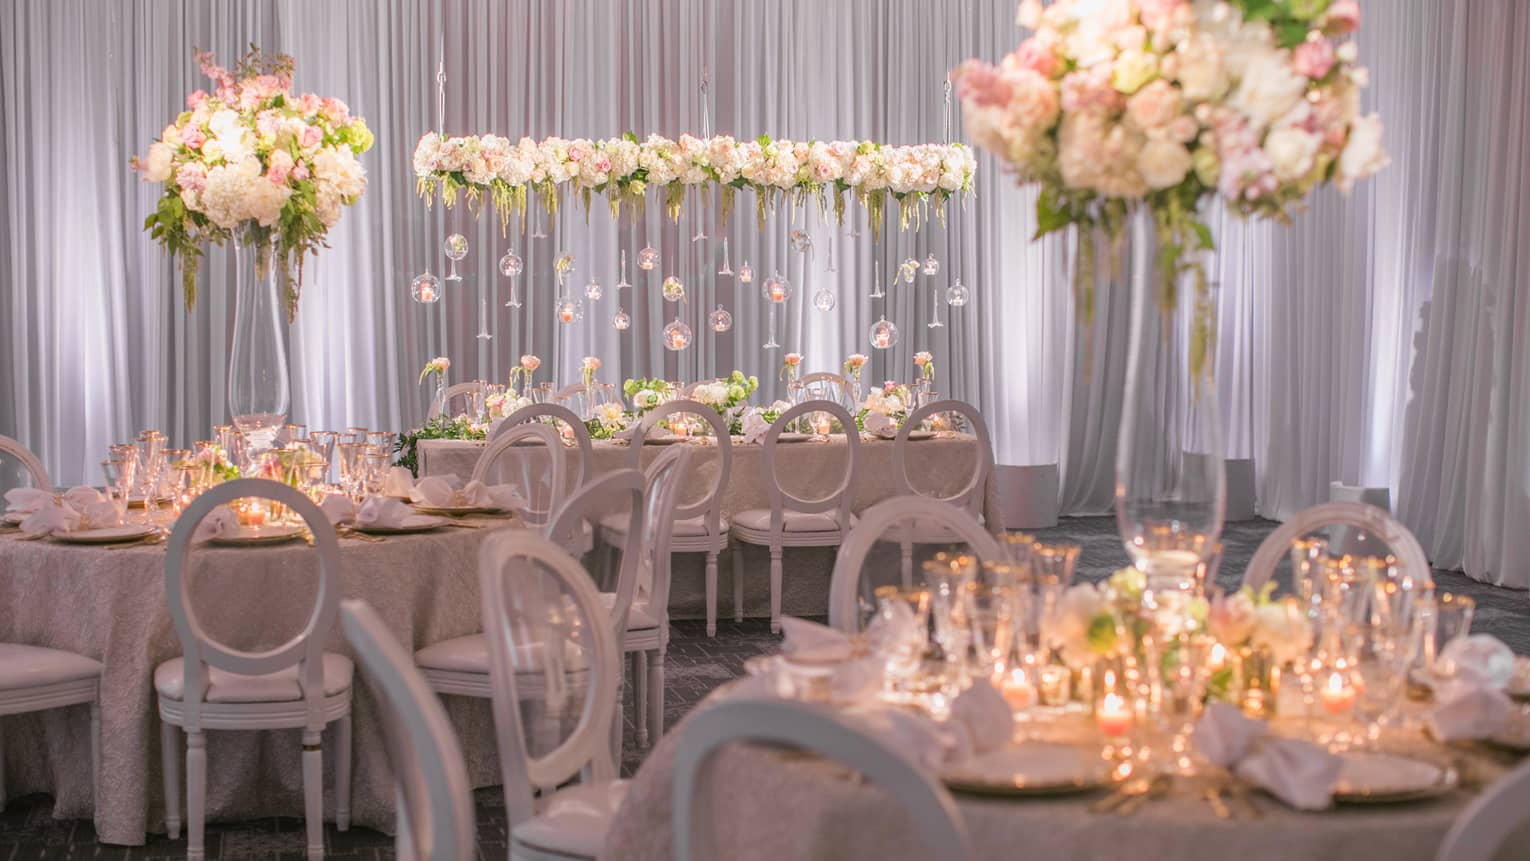 Flagler Ballroom wedding banquet with candle-lit tables, white flowers and glass bulb displays